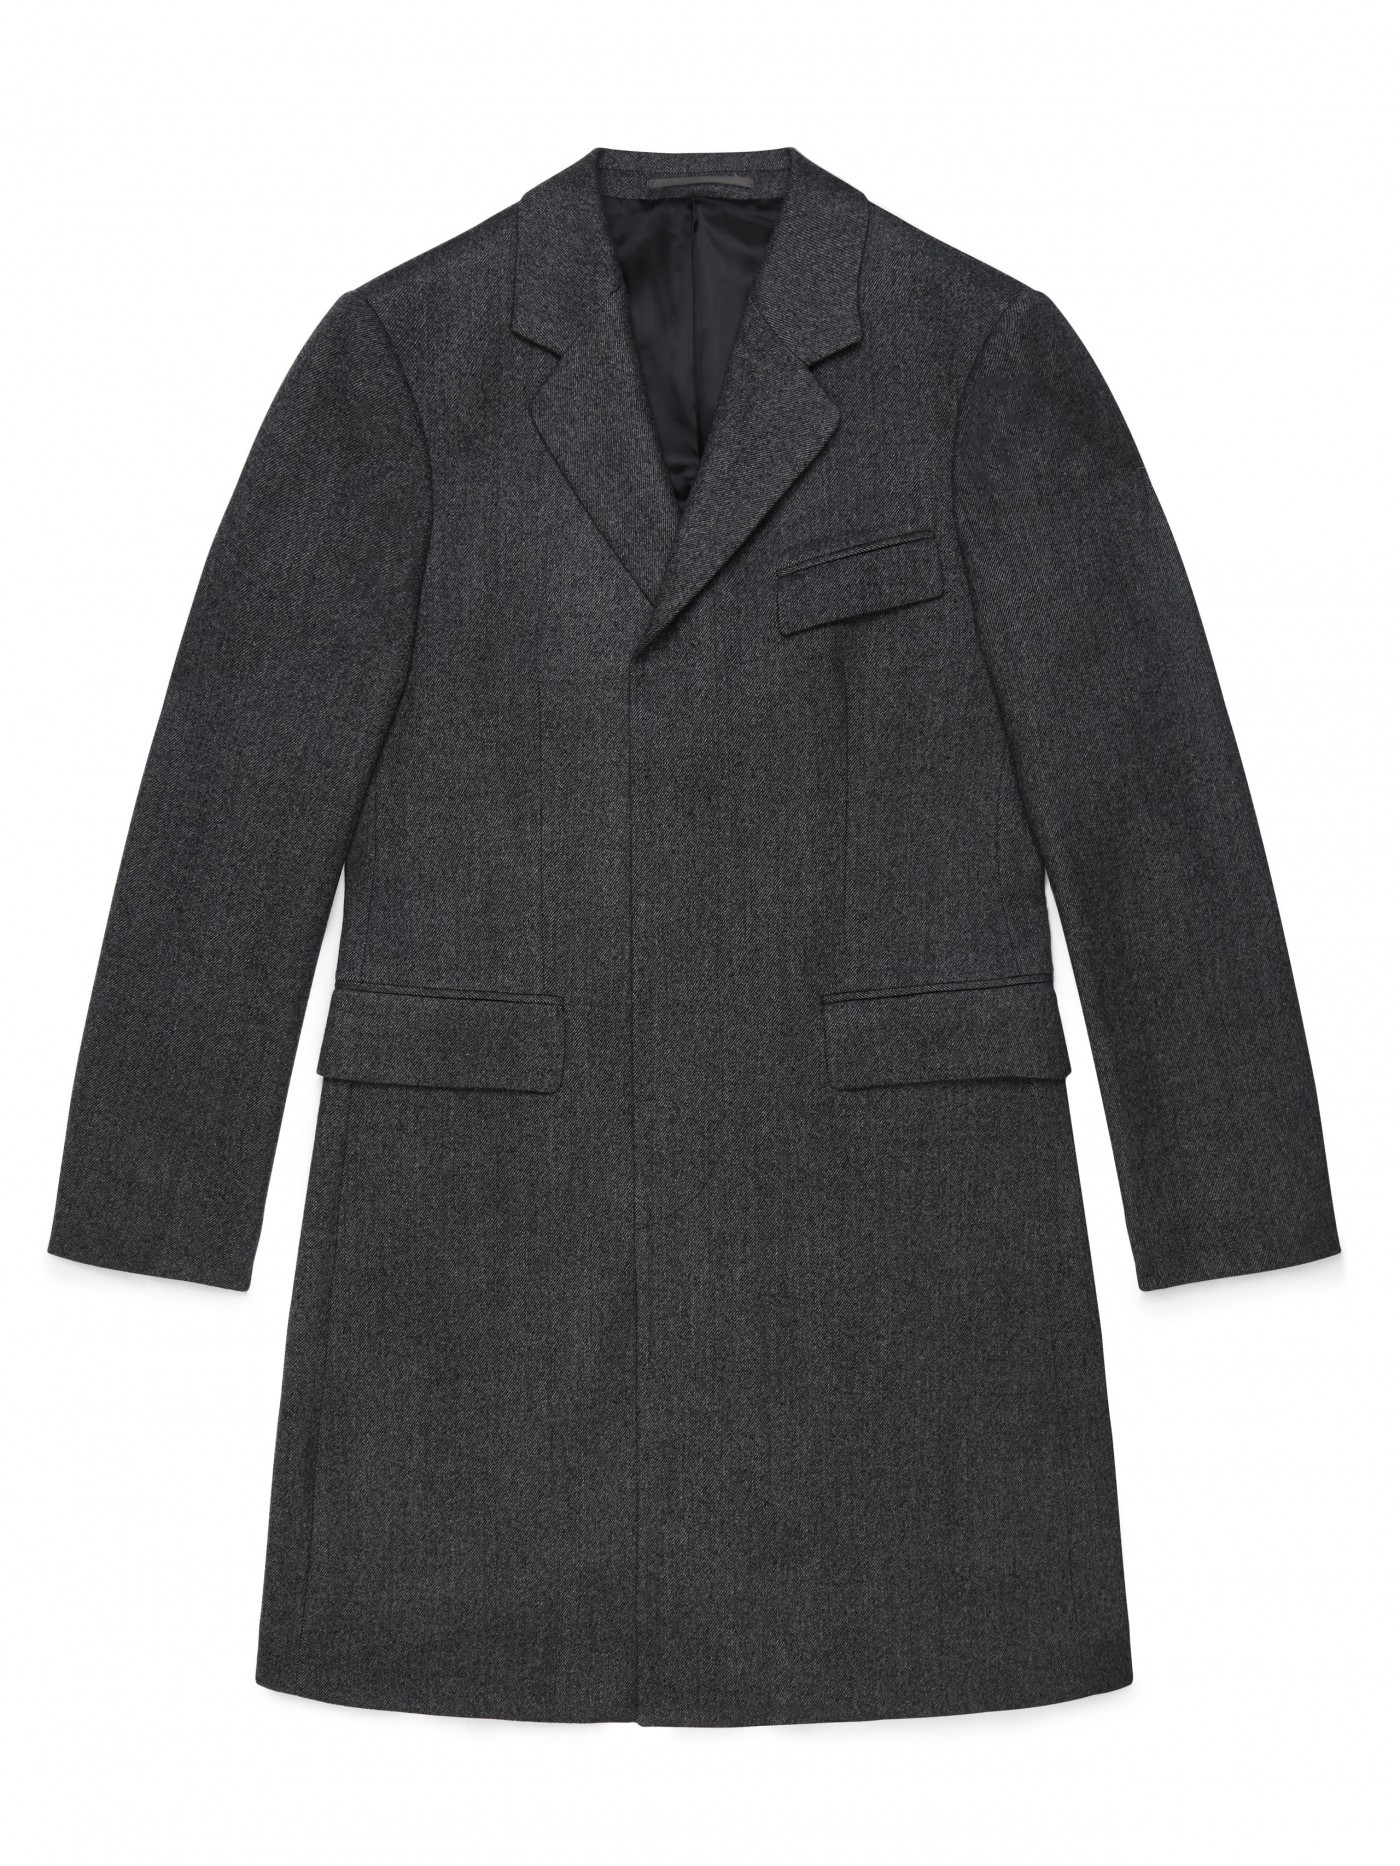 E. Tautz Charcoal Single Breasted Coat